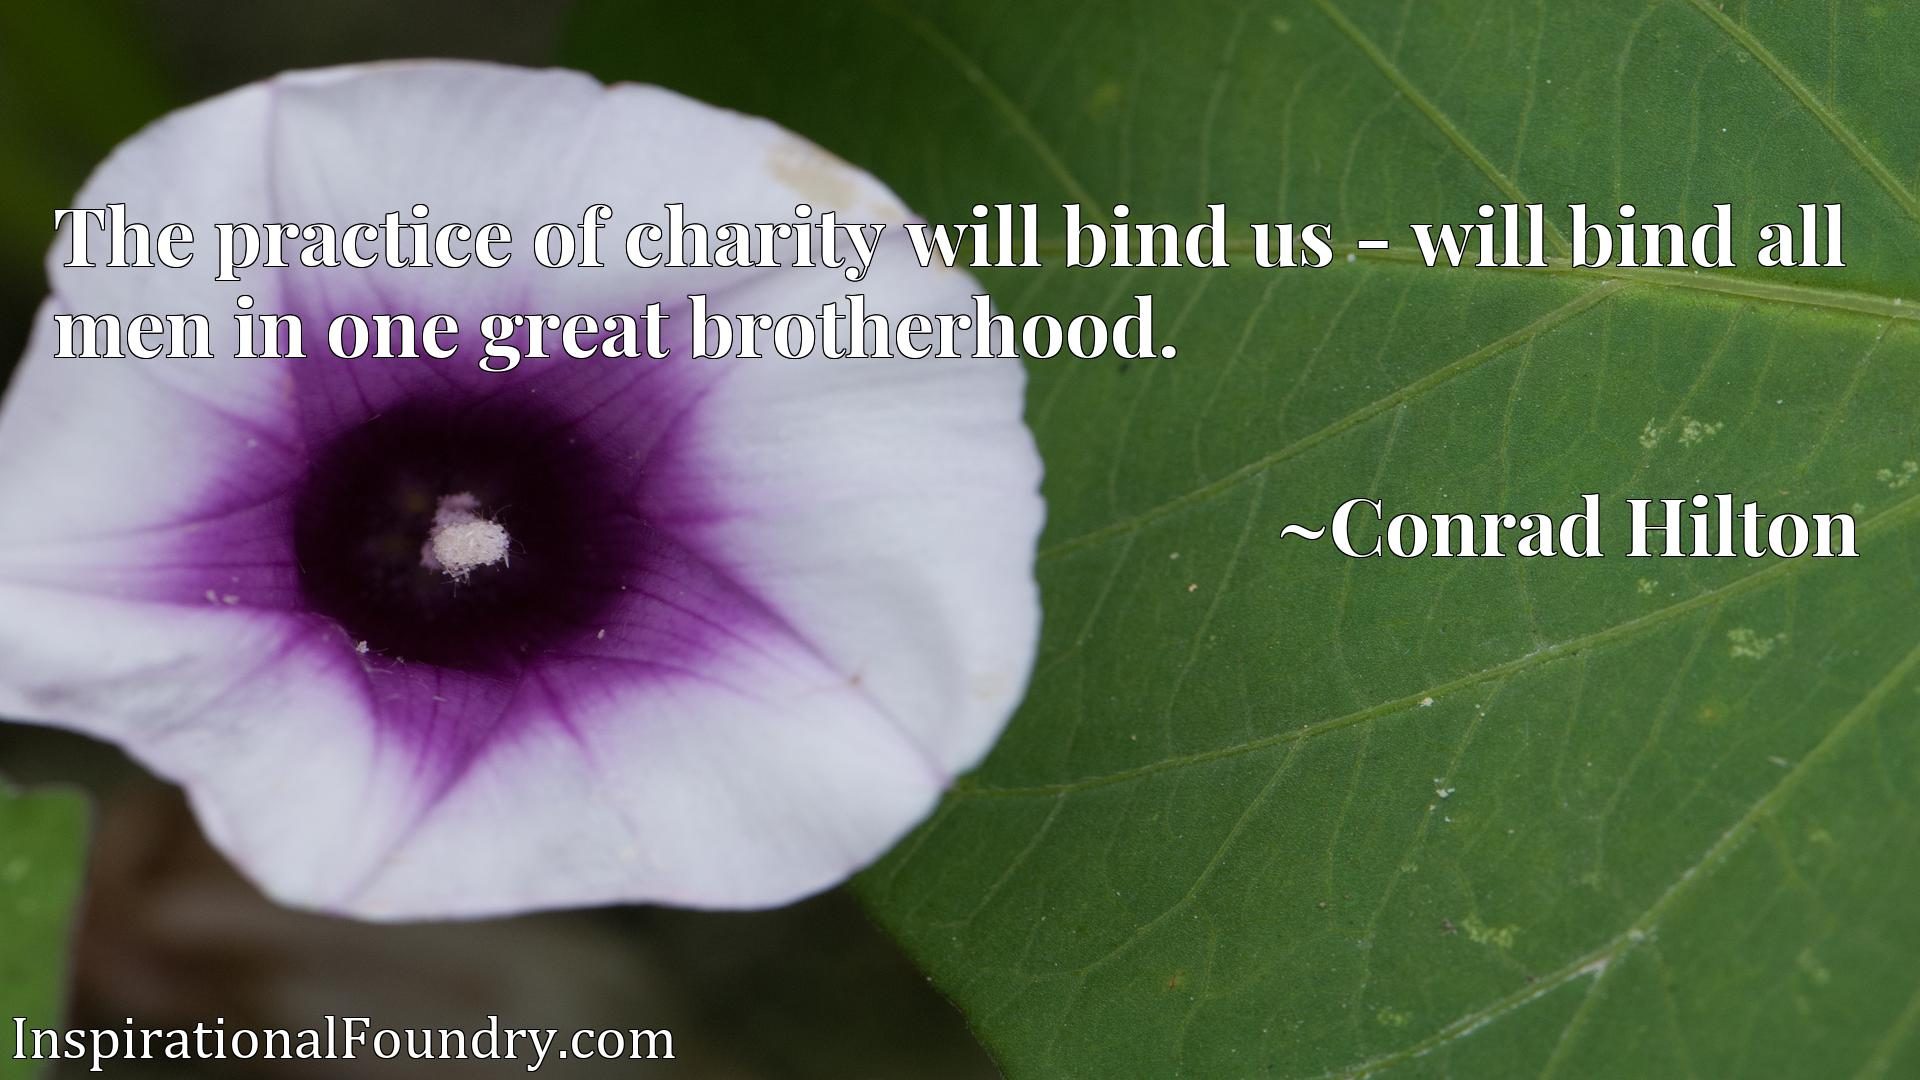 The practice of charity will bind us - will bind all men in one great brotherhood.